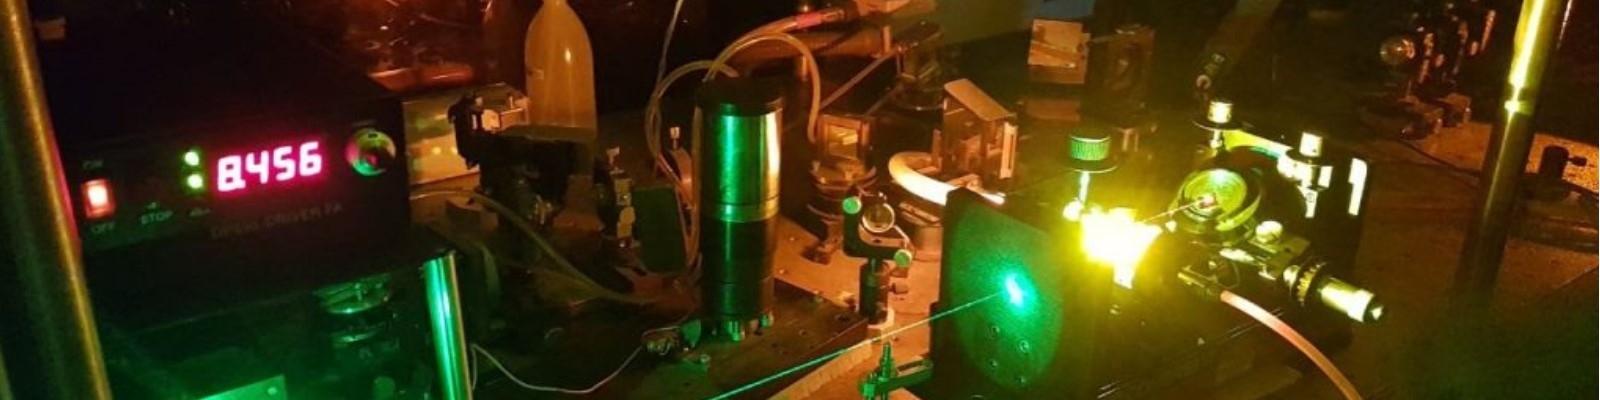 LASER SELECTIVE SPECTROSCOPY AND NANOSCOPY